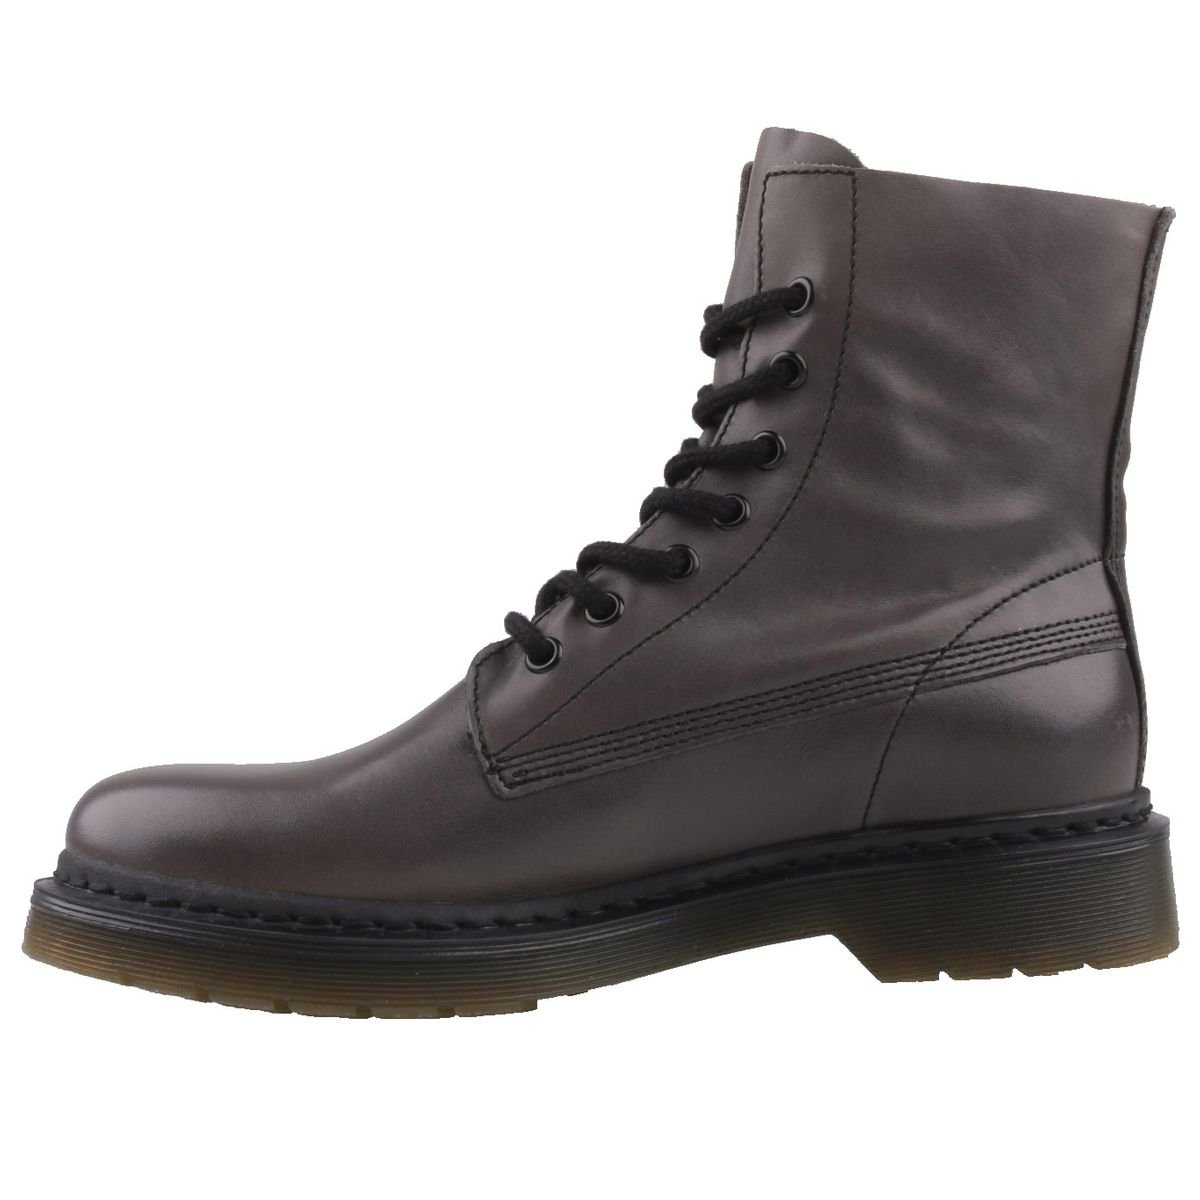 Tamaris Damen 25201 25201 Damen High-Top Grau (Graphite 206) 0c4170